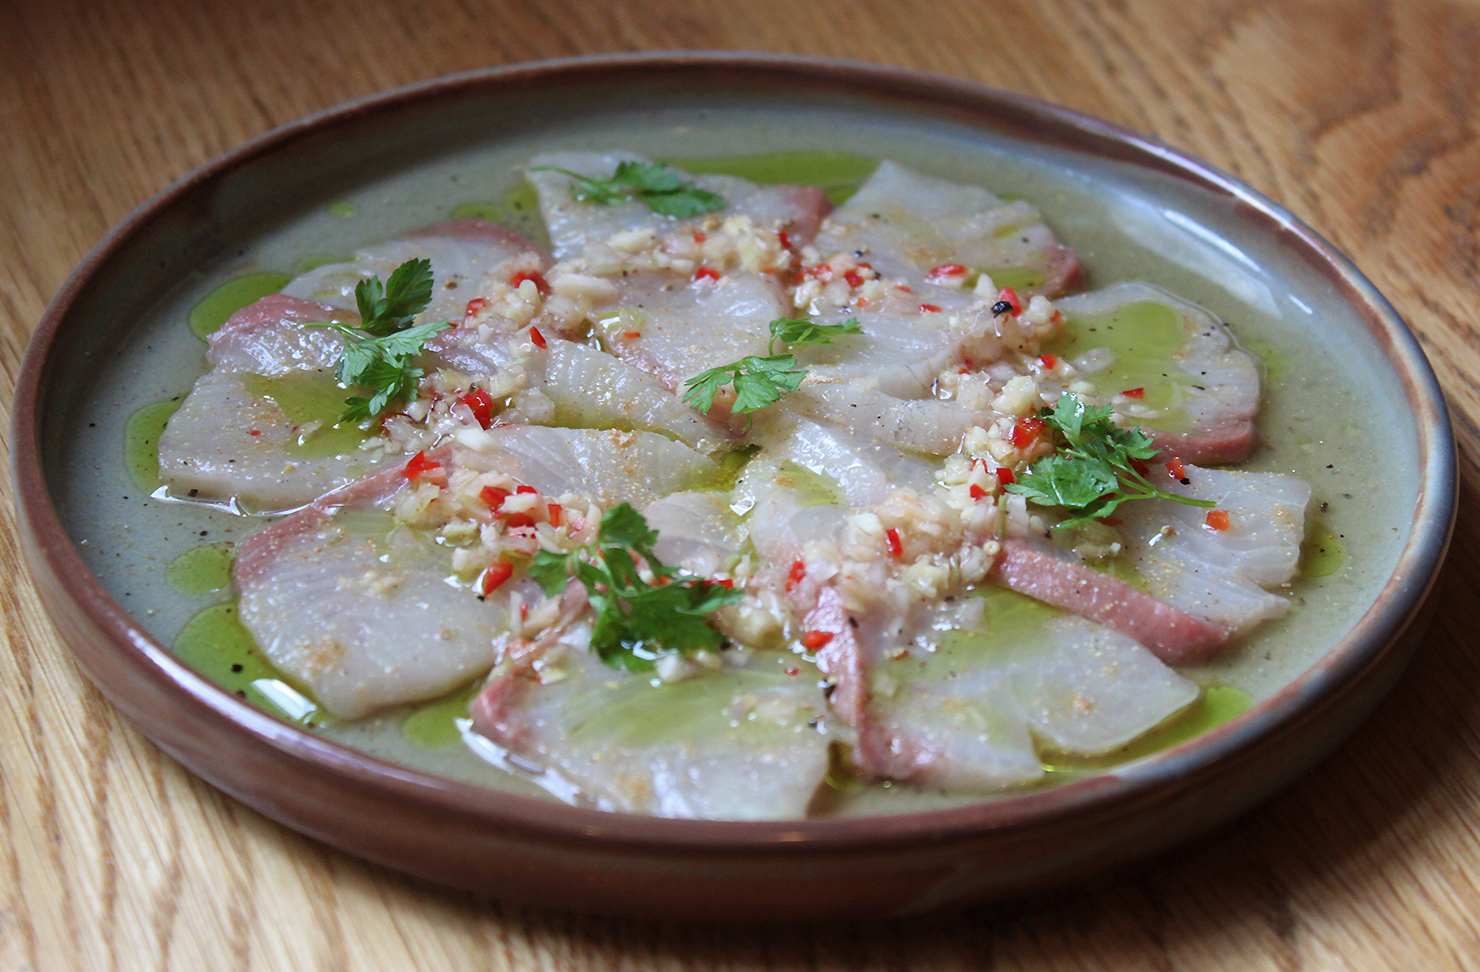 Dry Aged Kingfish with Lemongrass from Cafe Hanoi.